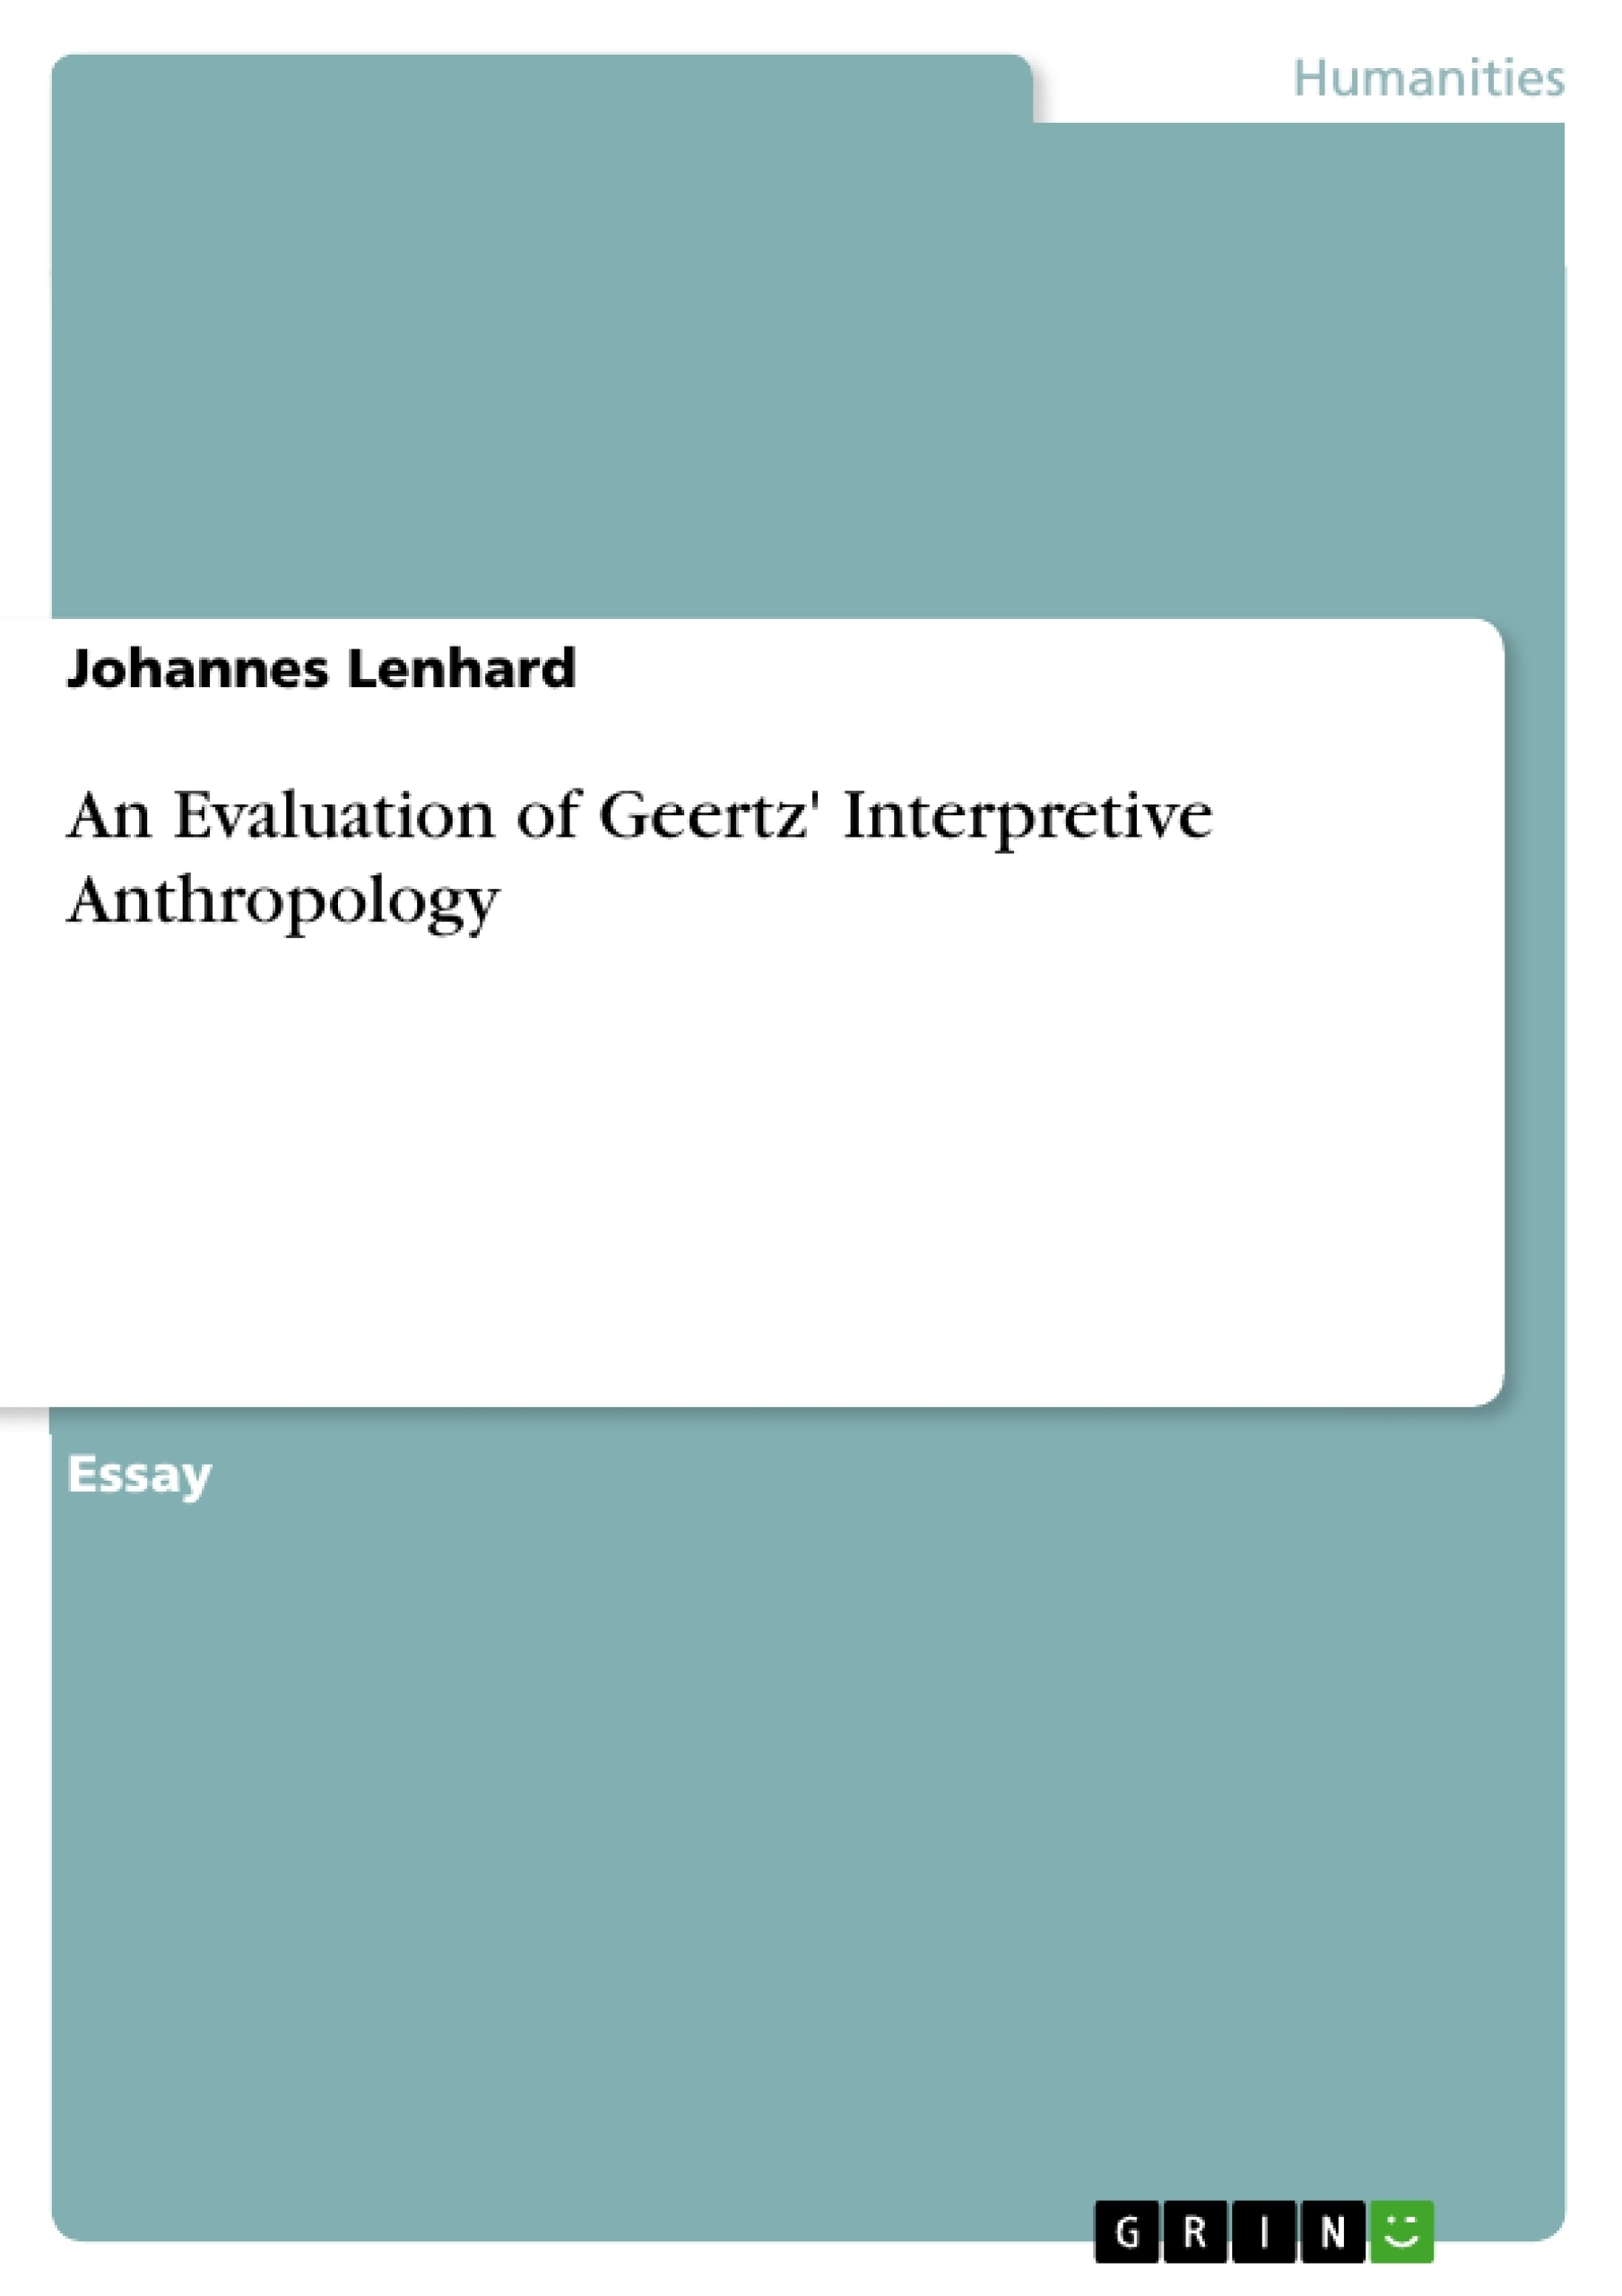 an evaluation of geertz interpretive anthropology publish your upload your own papers earn money and win an iphone 7